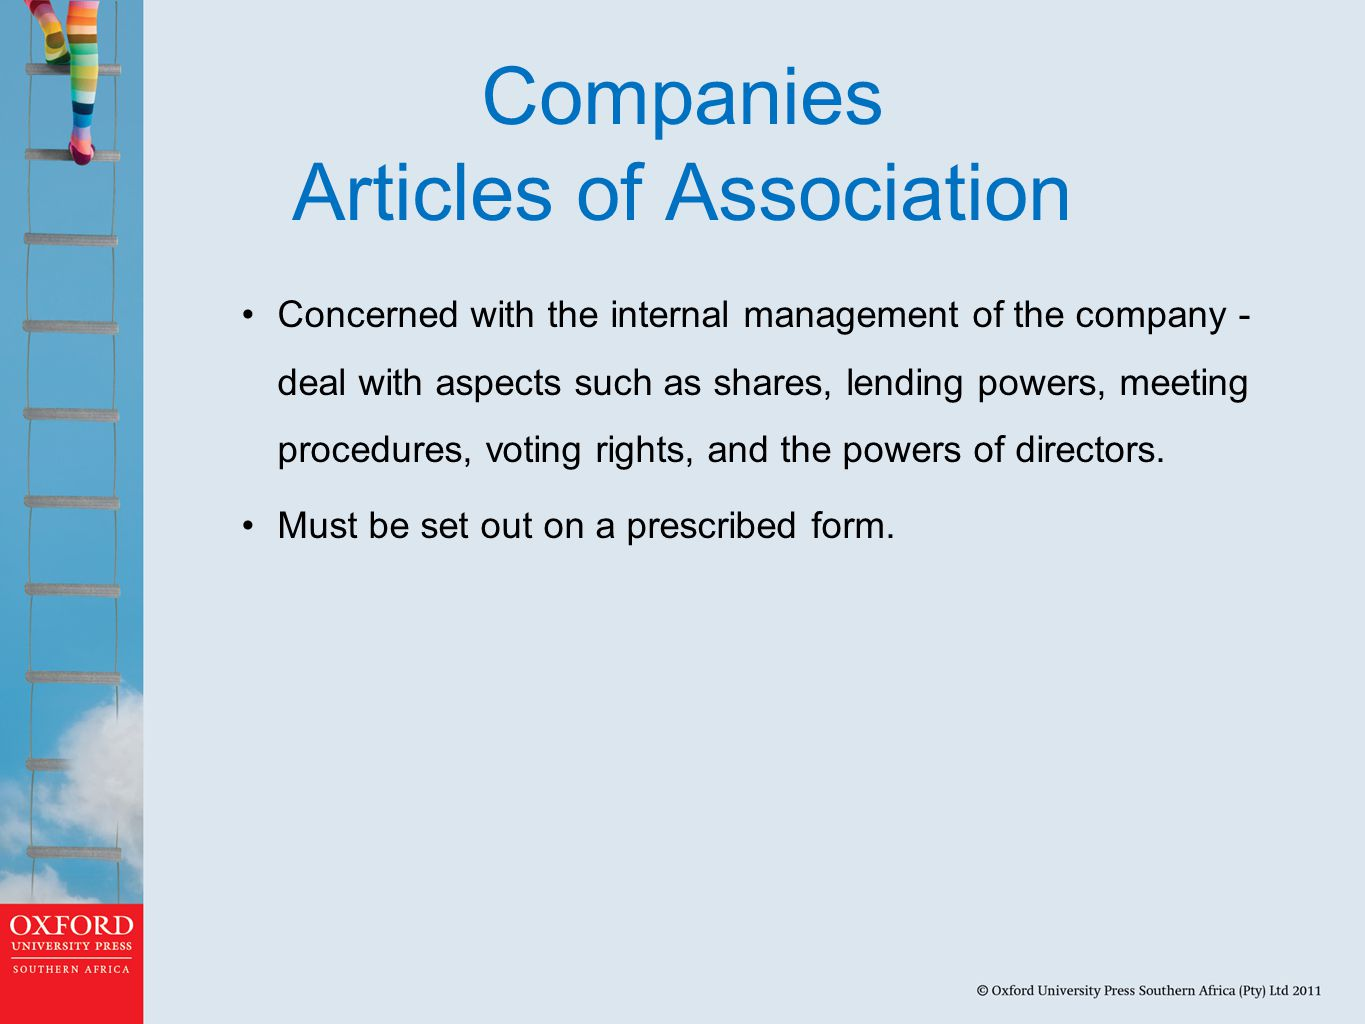 Companies Articles of Association